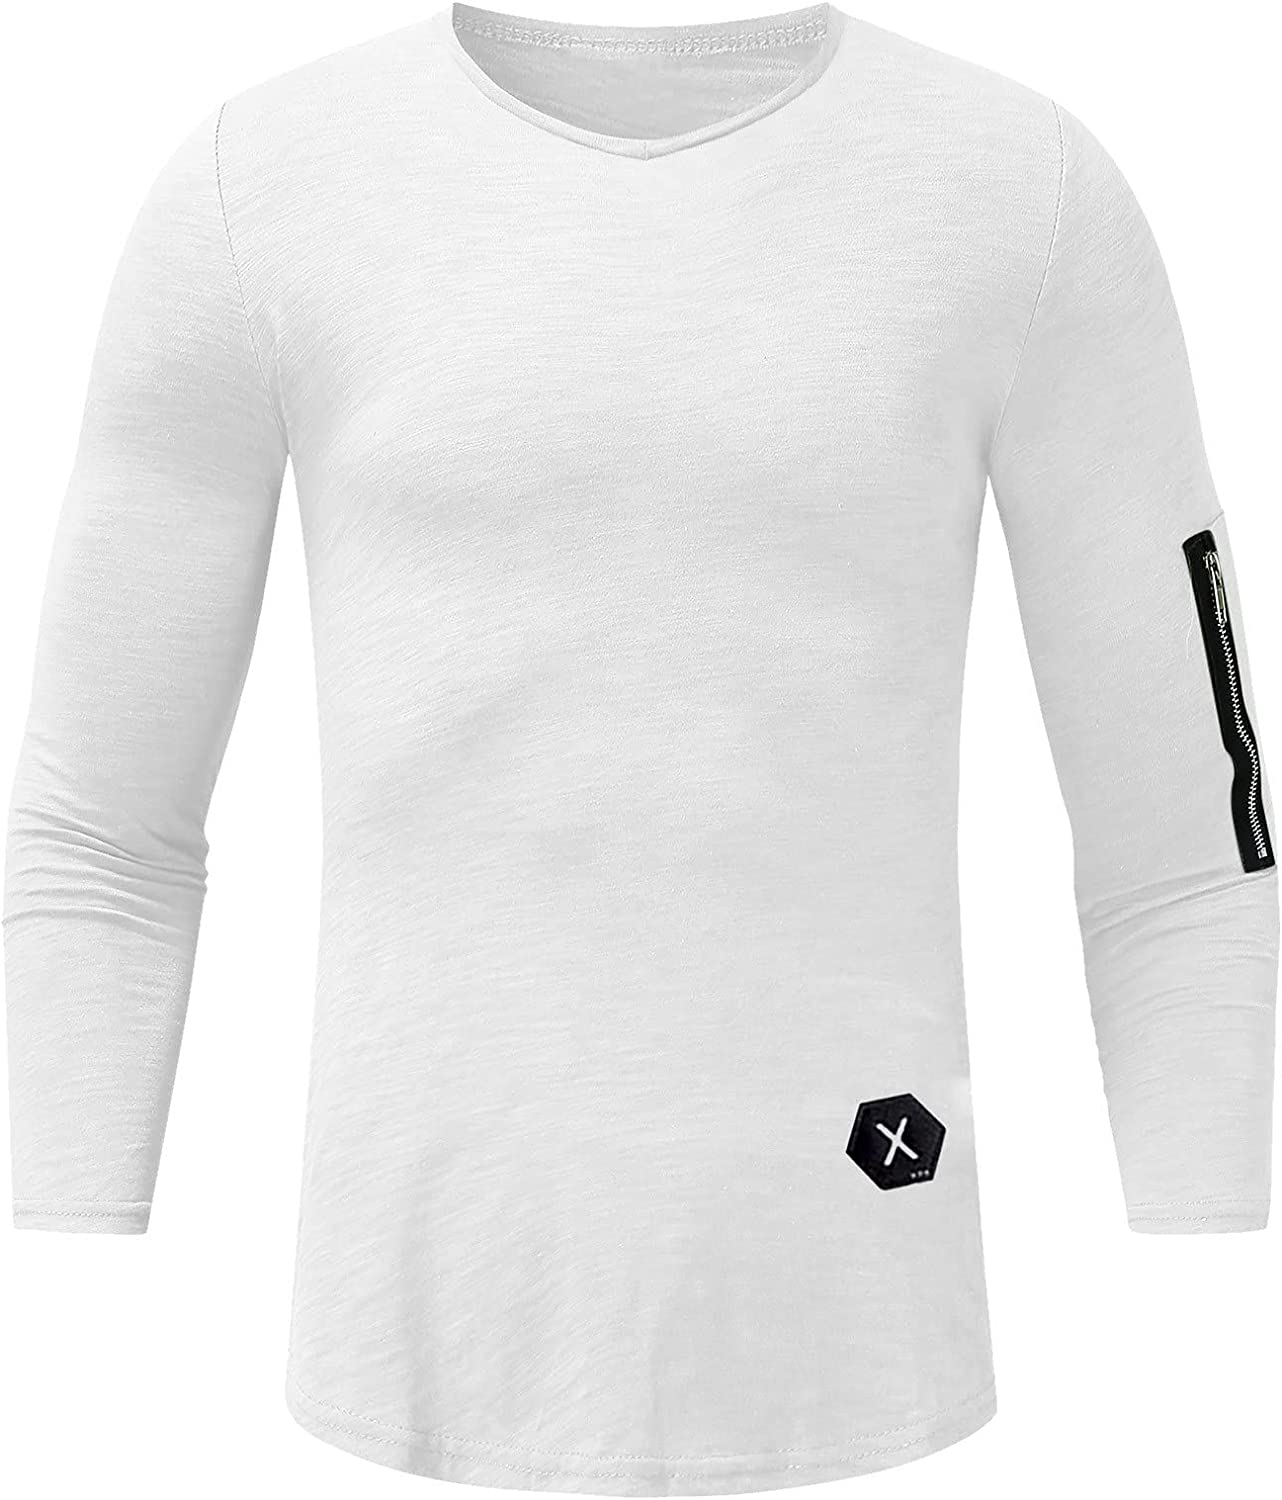 Men's Autumn/Winter Slub Cotton Arm Zipper With Label V-Neck Long-Sleeved Tops Stretchy Comfortable Shirts